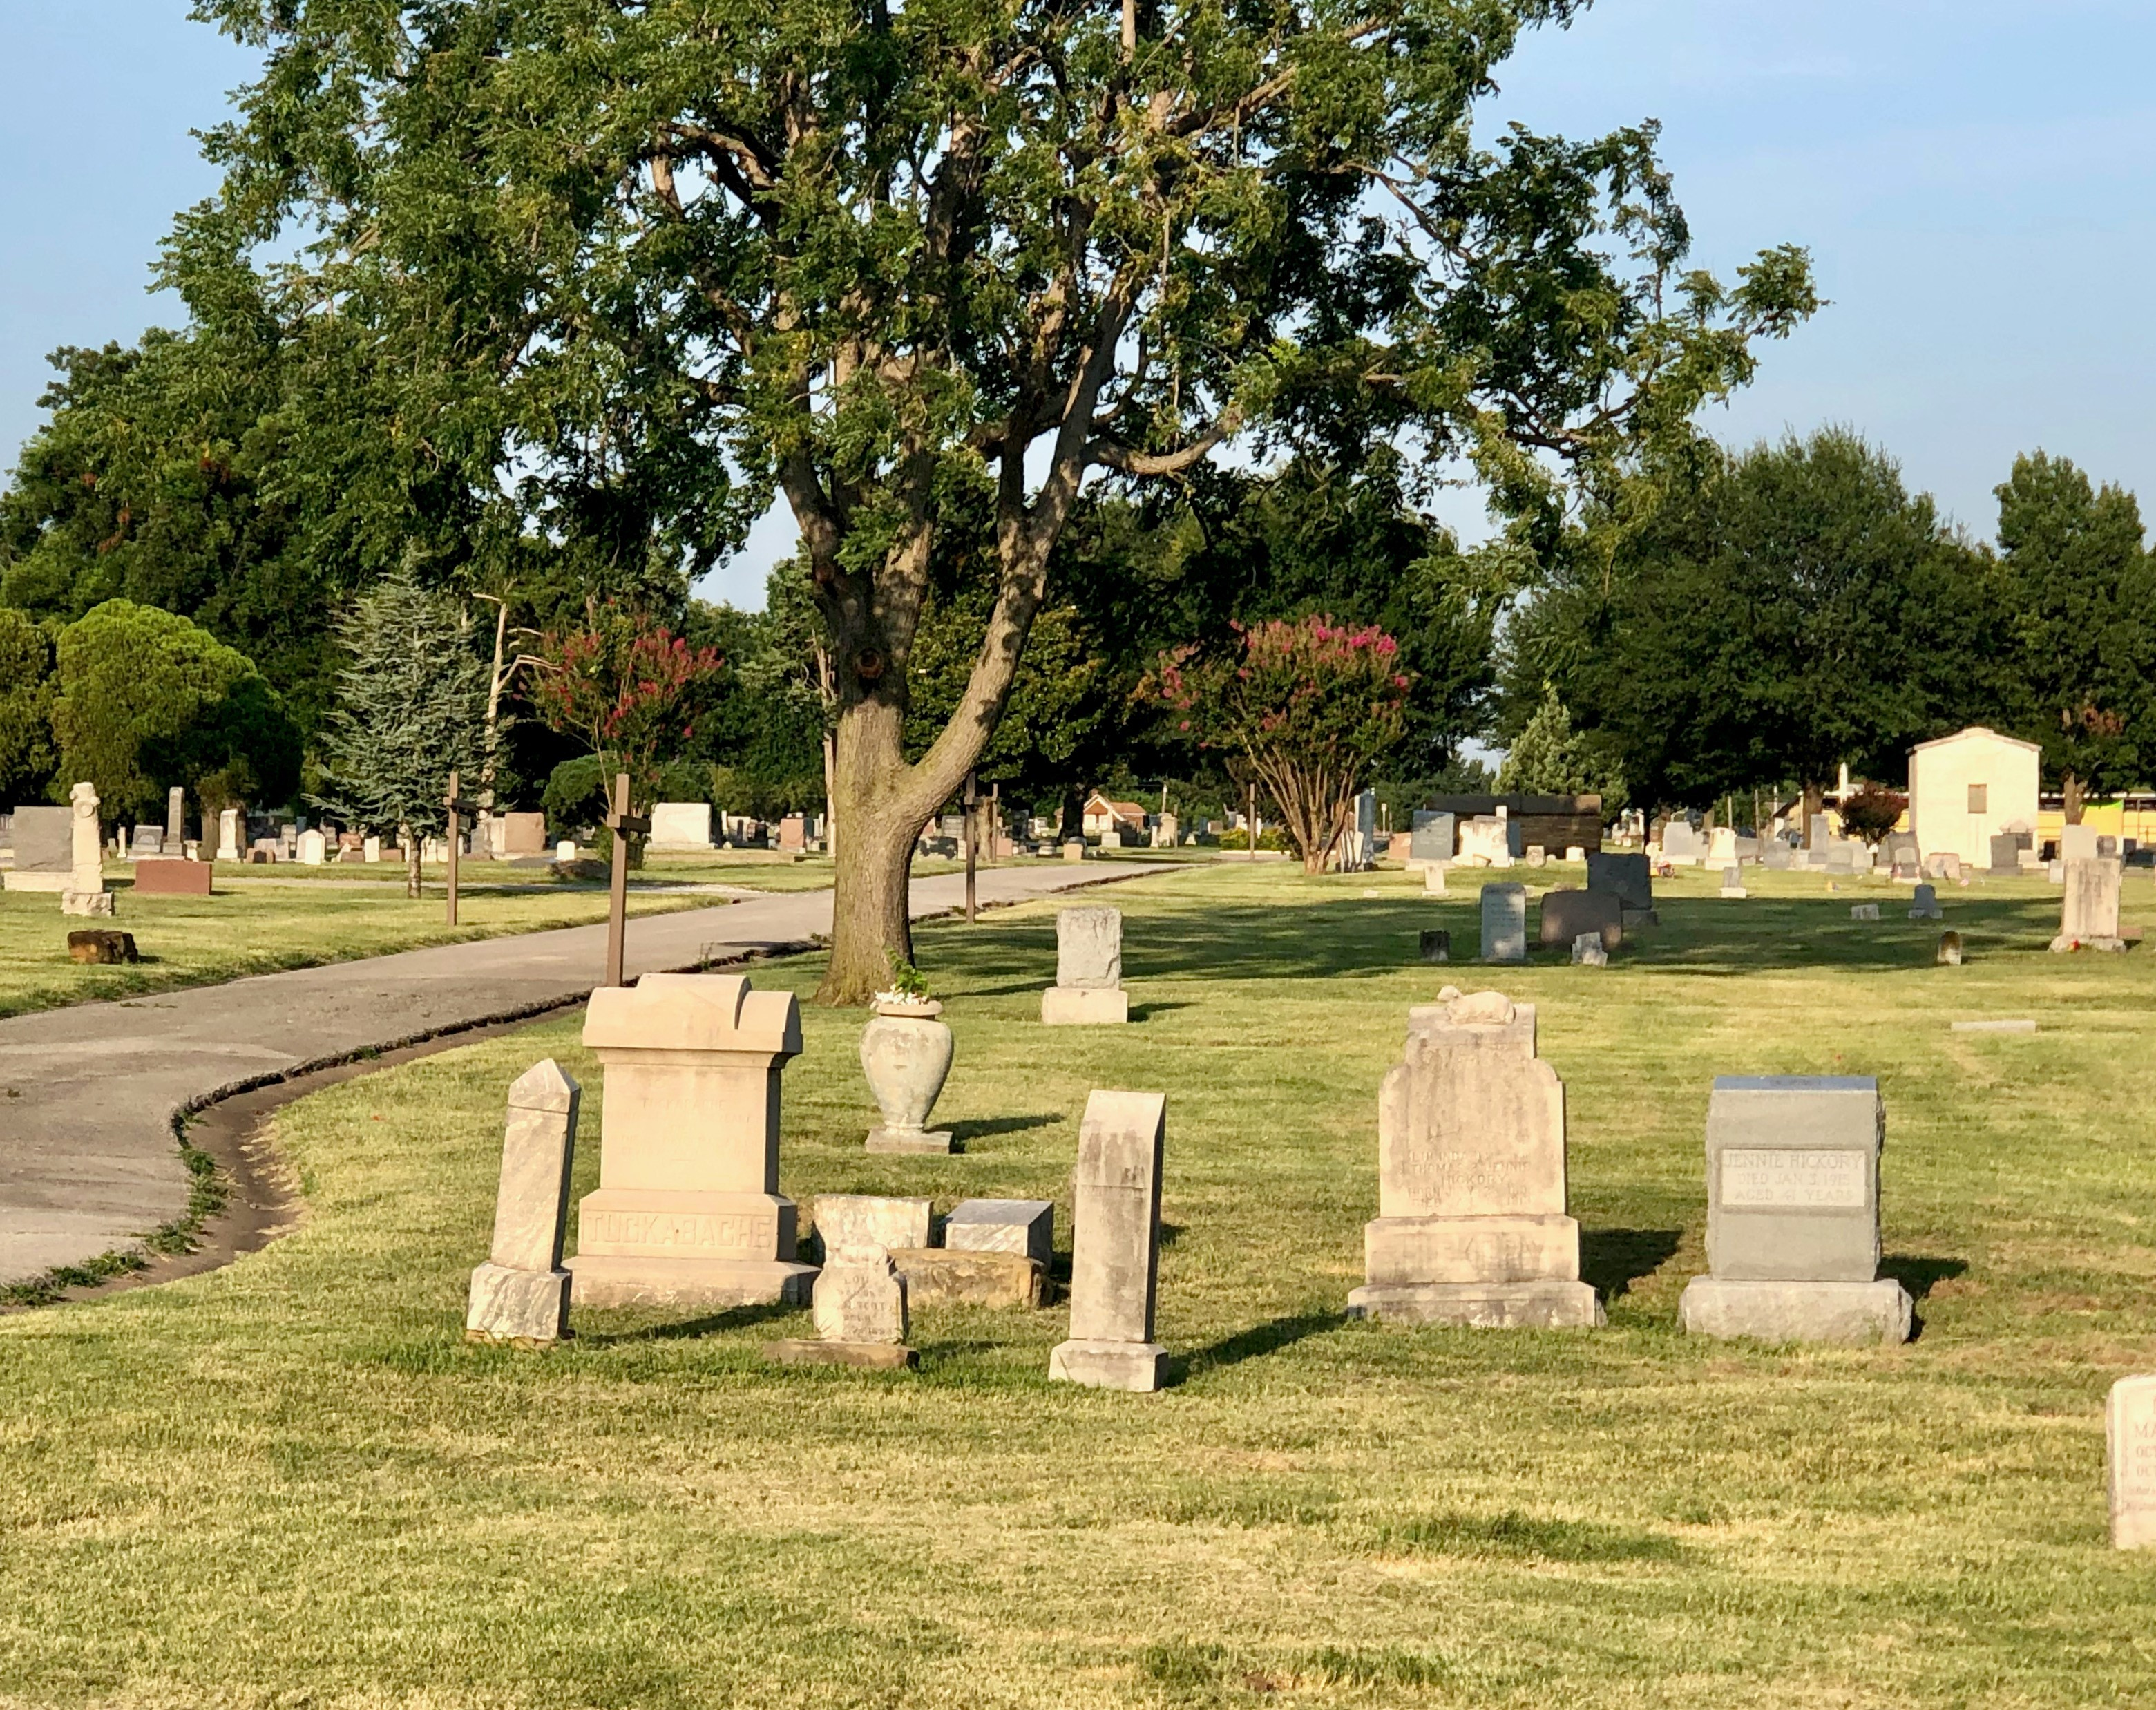 A cemetery plot features multiple gravestones on a green lawn